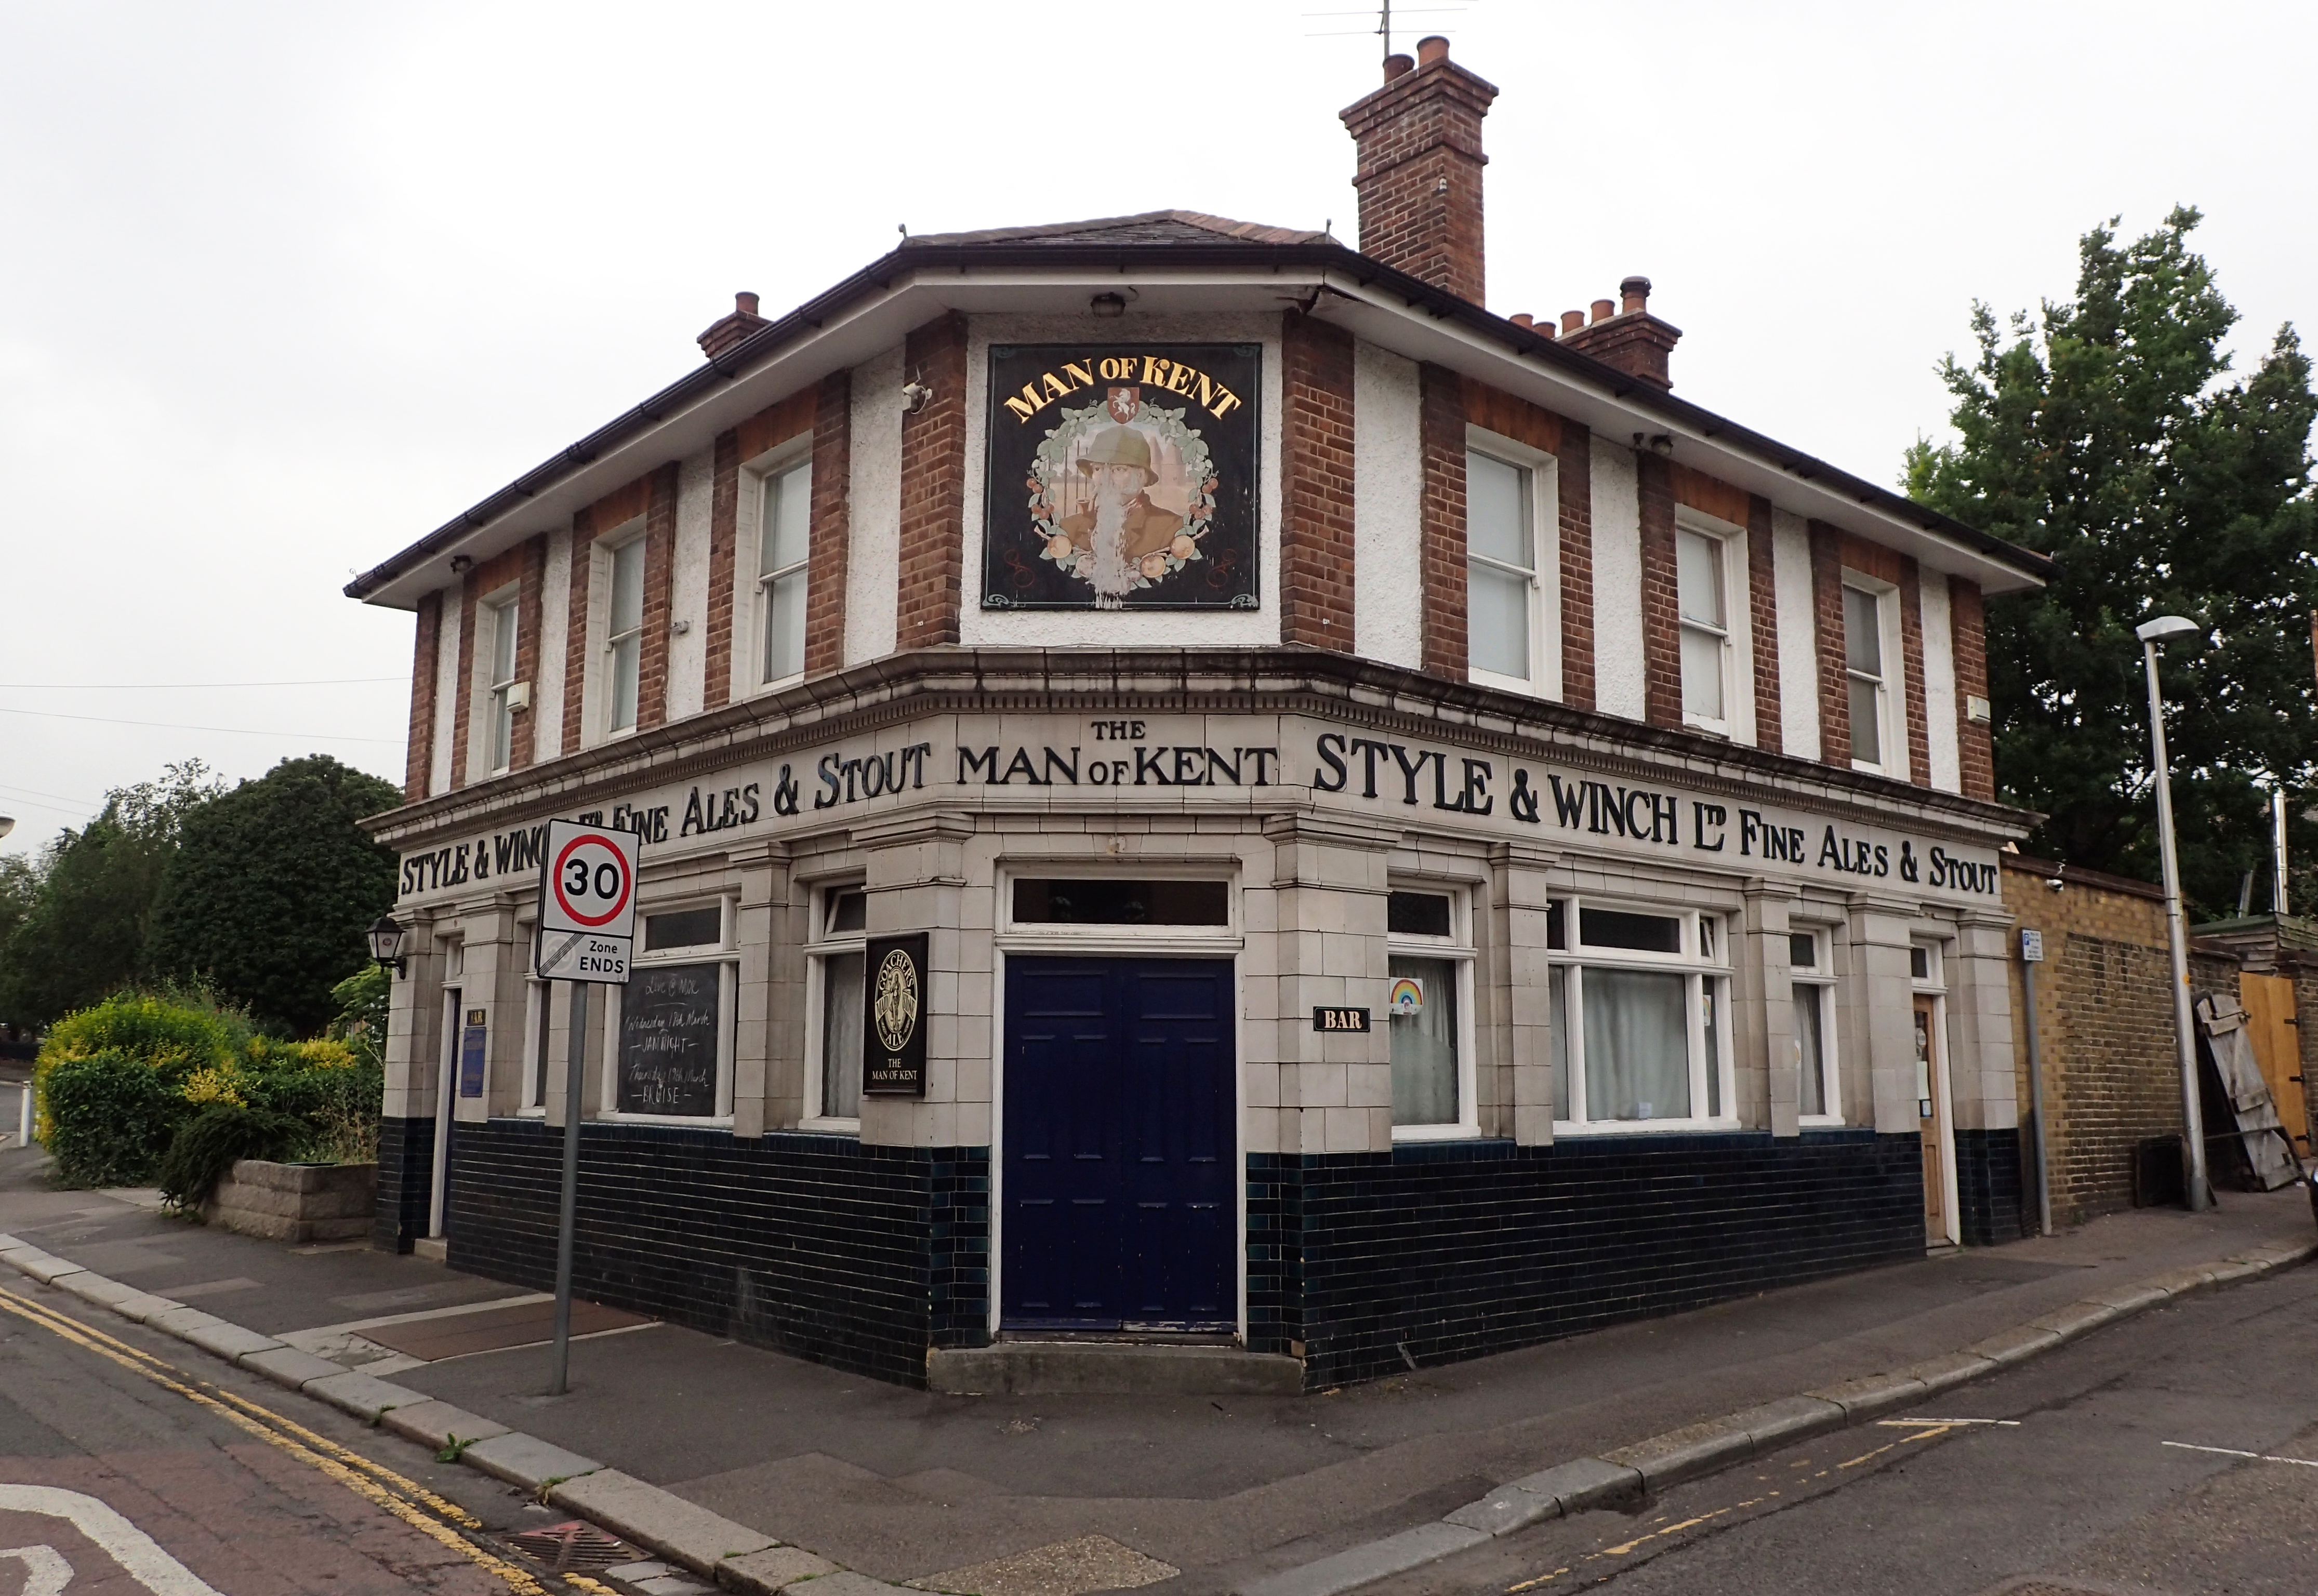 Classic English public house. Due to Covid-19, these wouldn't be allowed to open for some weeks yet. The roots of the Style & Winch brewery in Medway go back to 1799. They ceased brewing in 1965